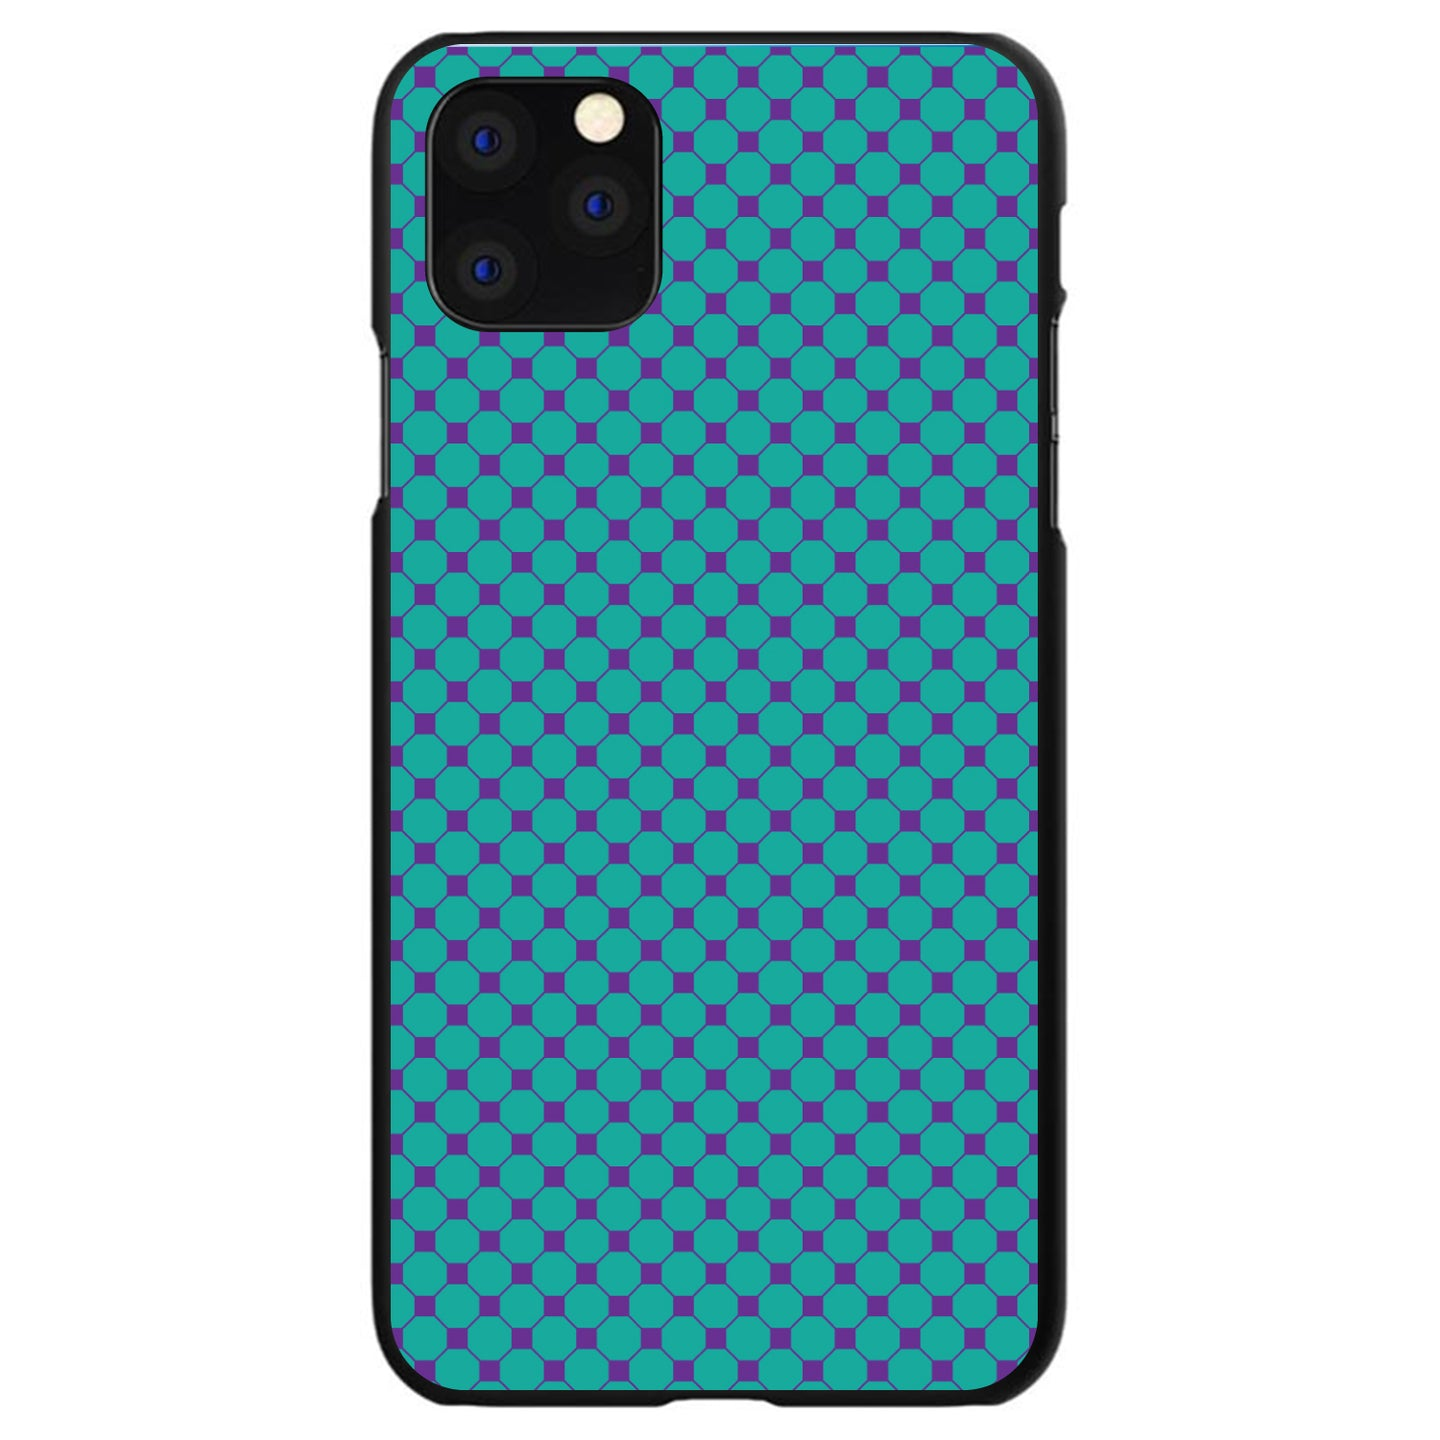 DistinctInk® Hard Plastic Snap-On Case for Apple iPhone - Teal Purple Checkered Pattern